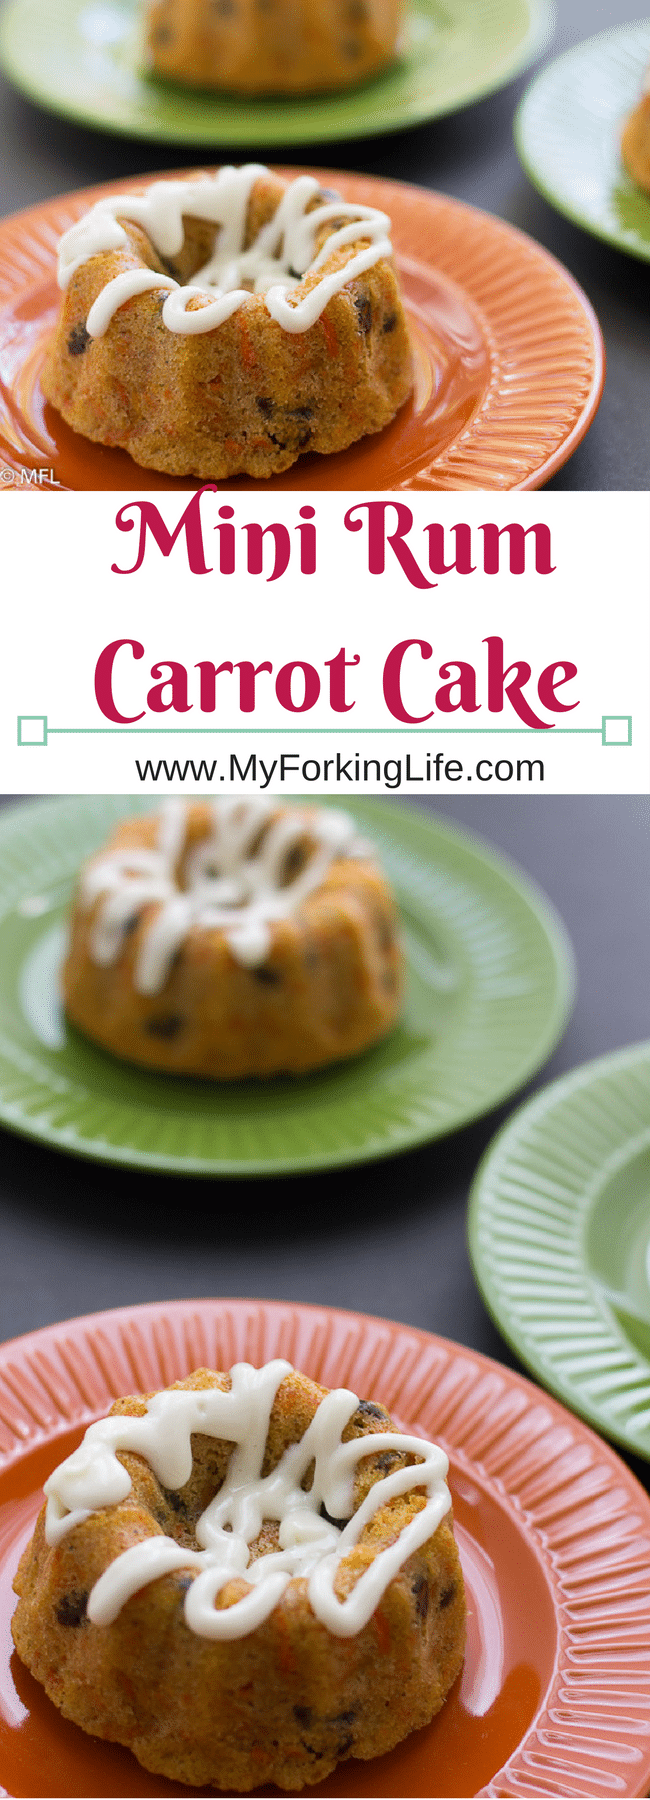 Cute Mini Rum Carrot Cake Recipe. Perfect for gift giving. Perfect mini boozy dessert for Valentine's Day/